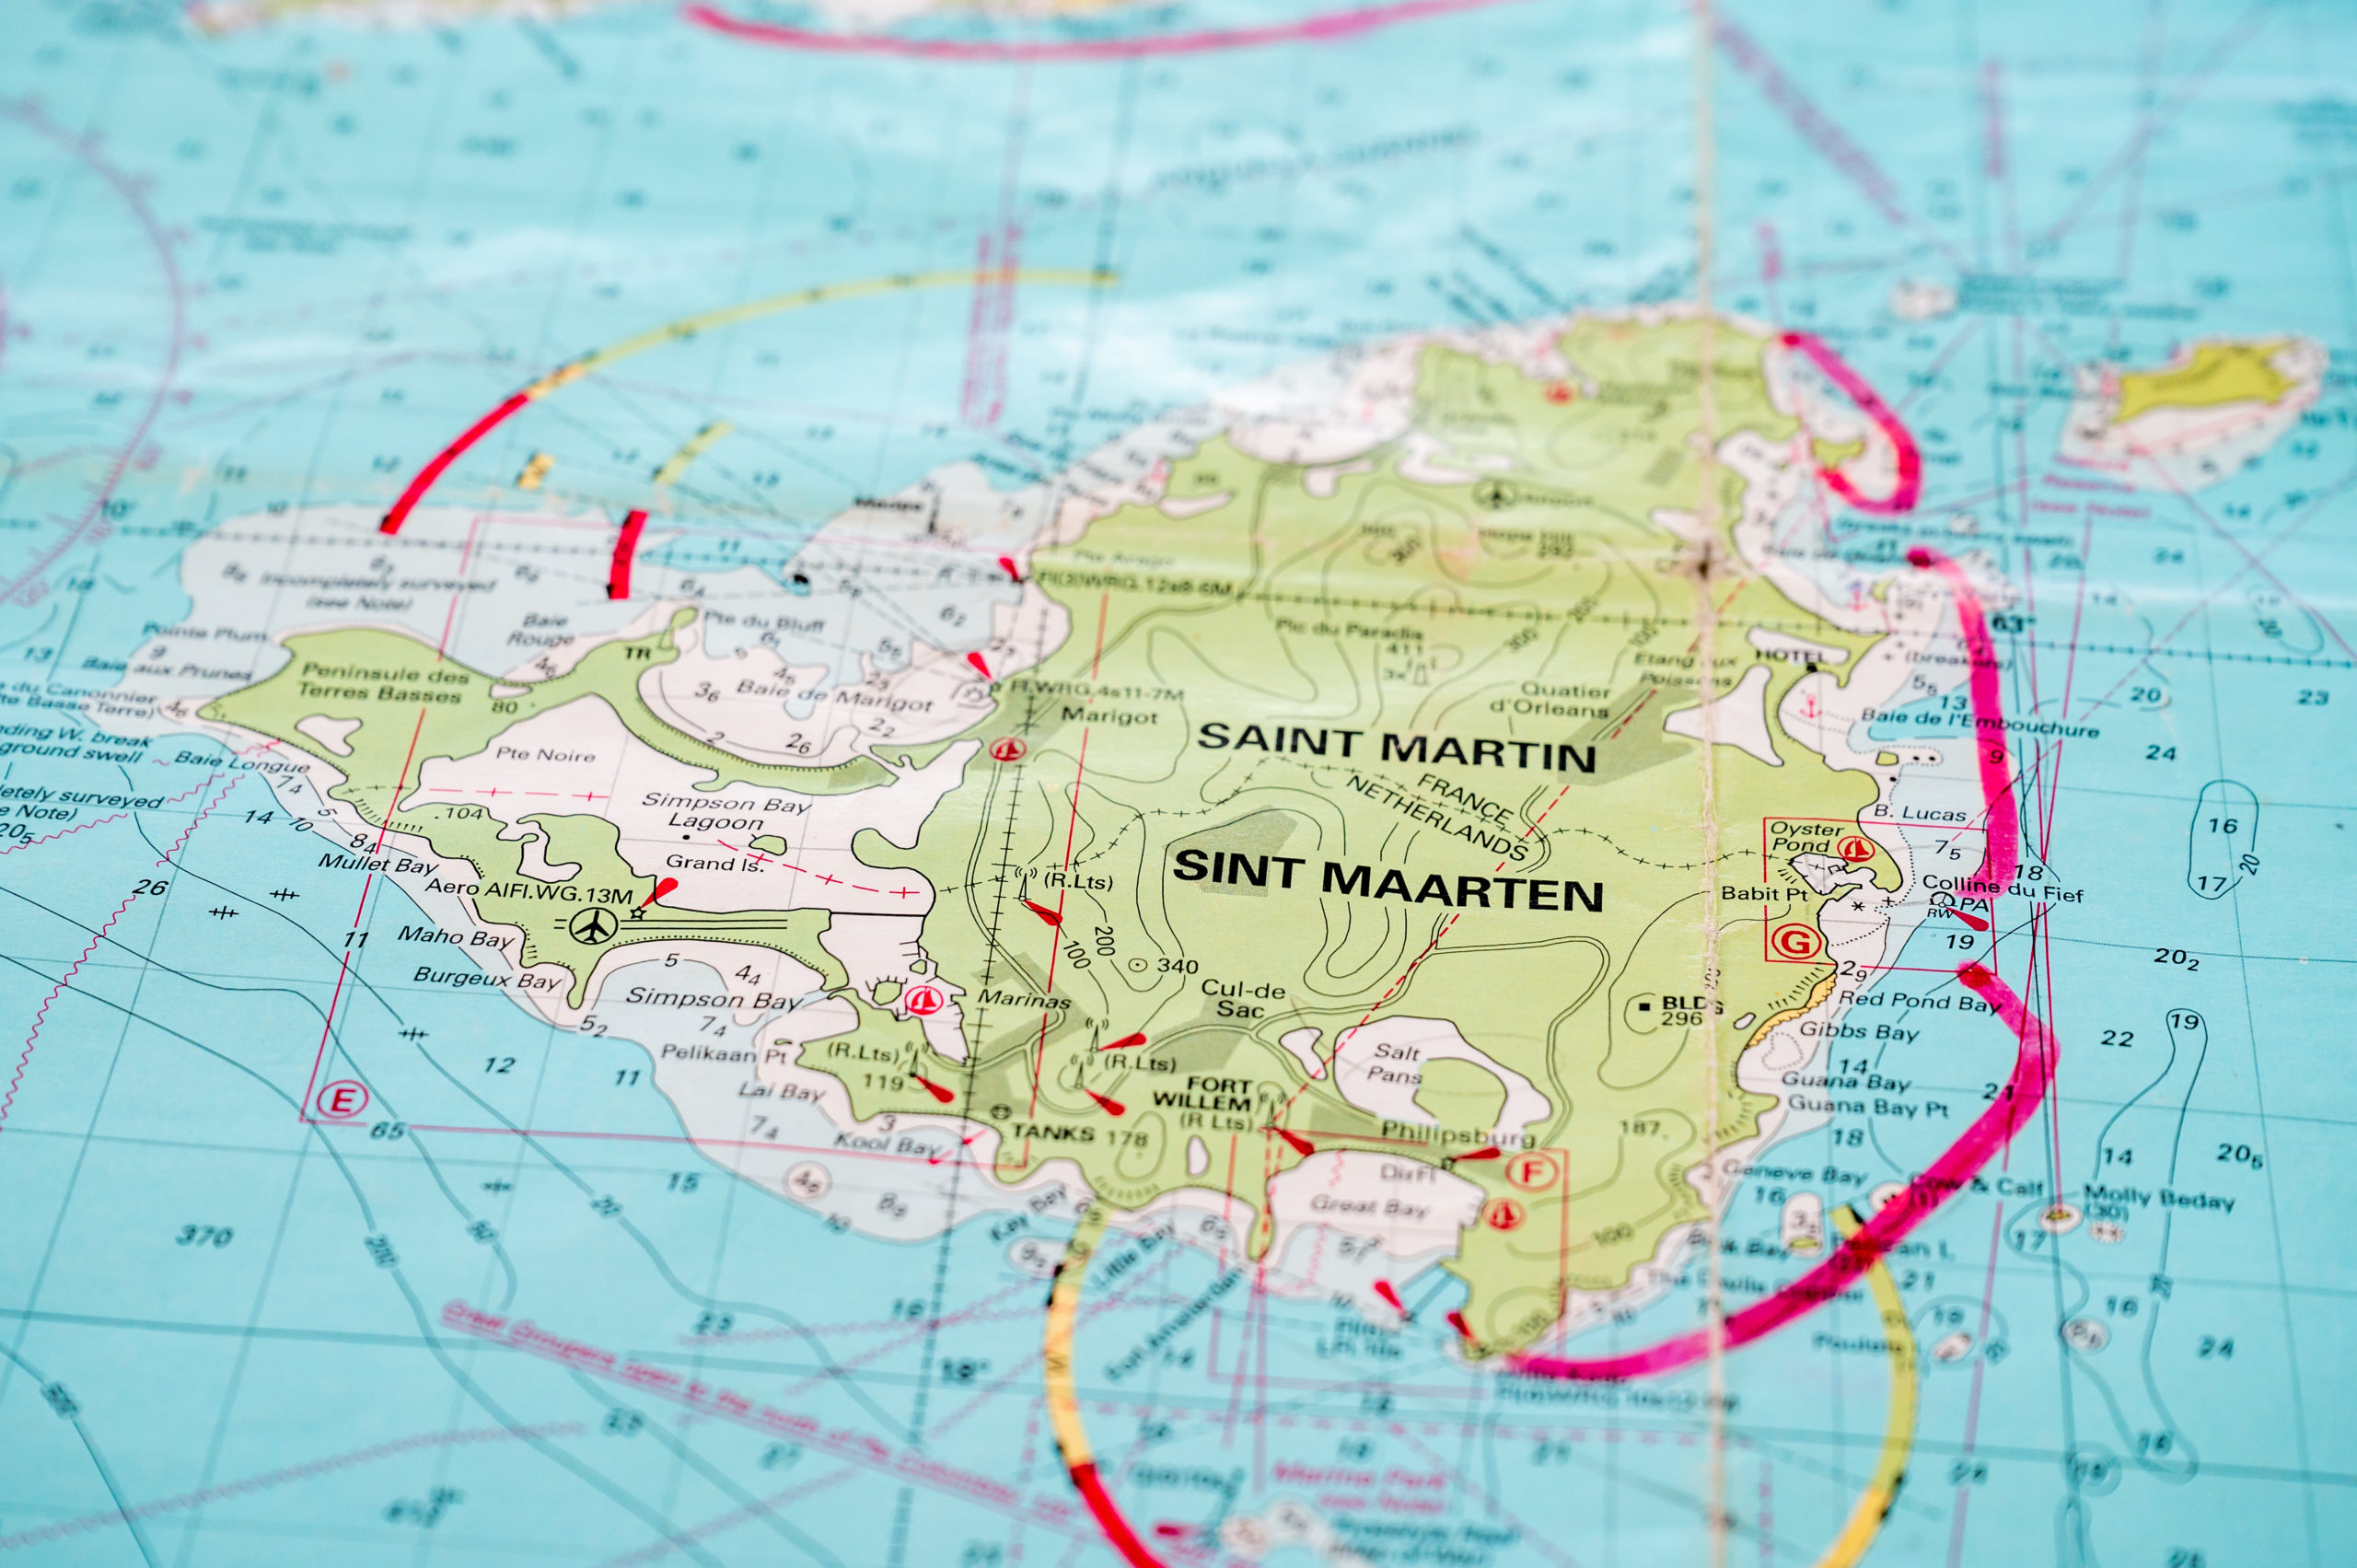 St. Martin/St. Maarten Border Map